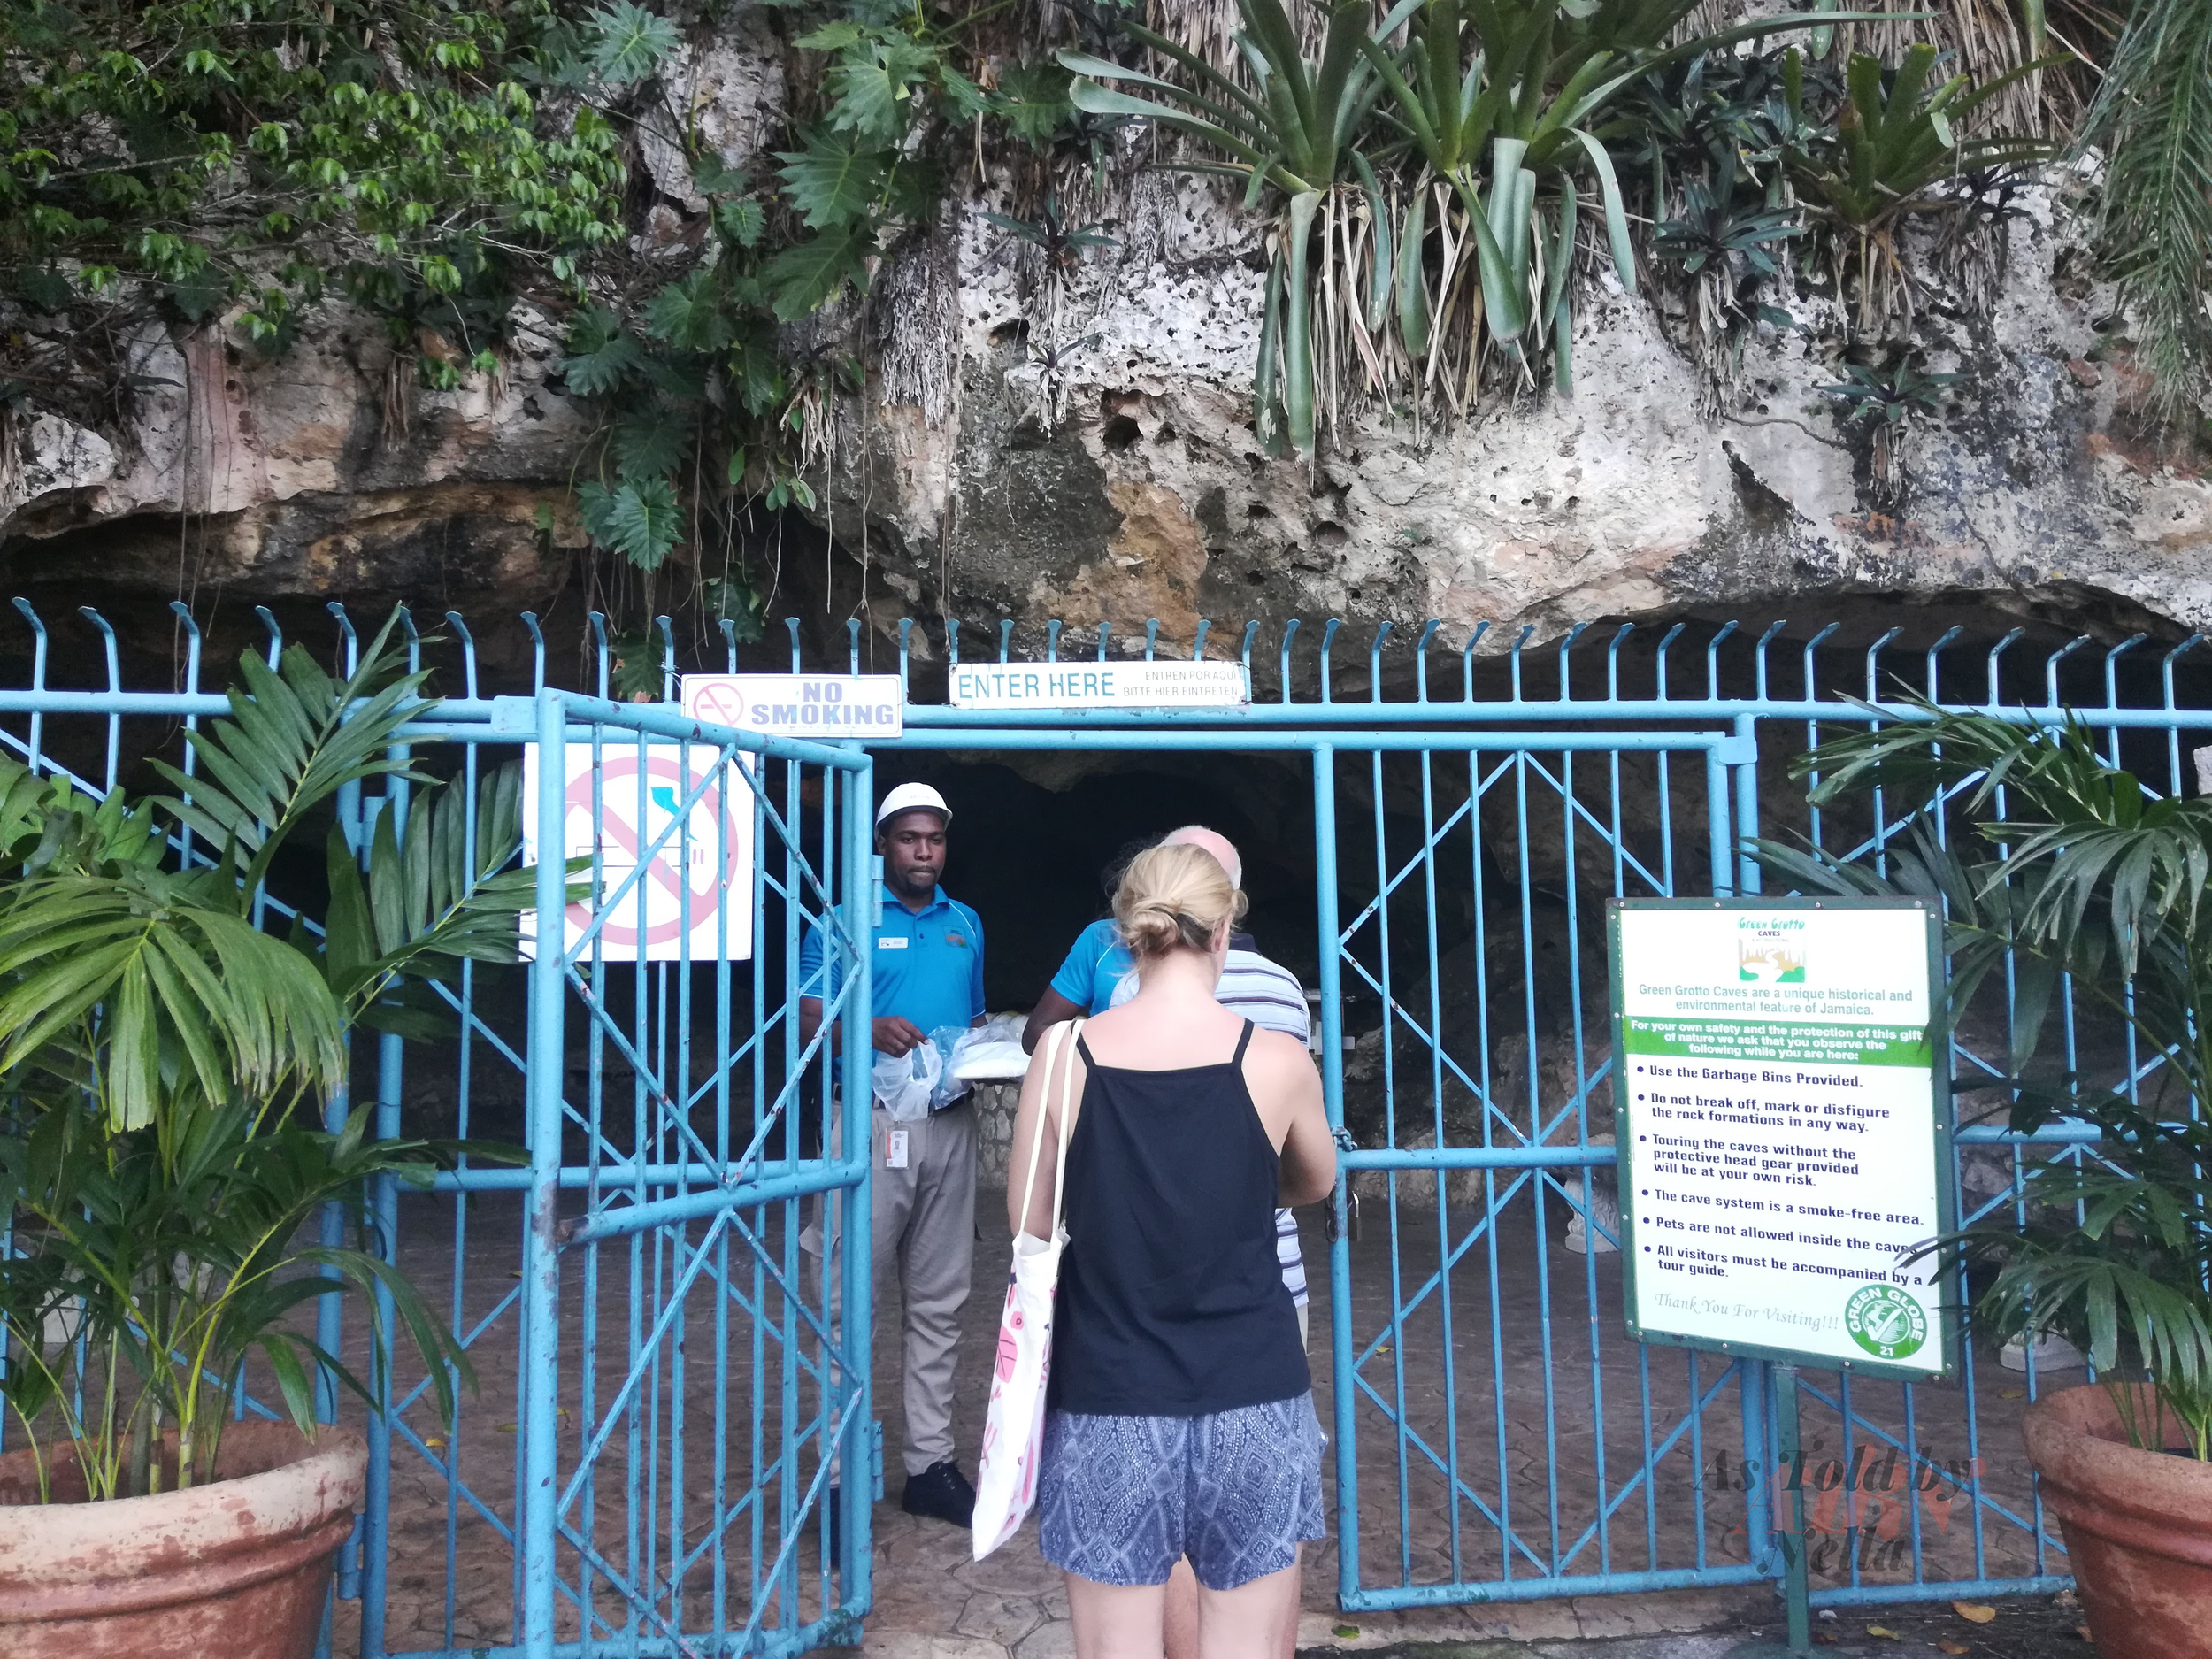 The Entrance to the Green Grotto Caves